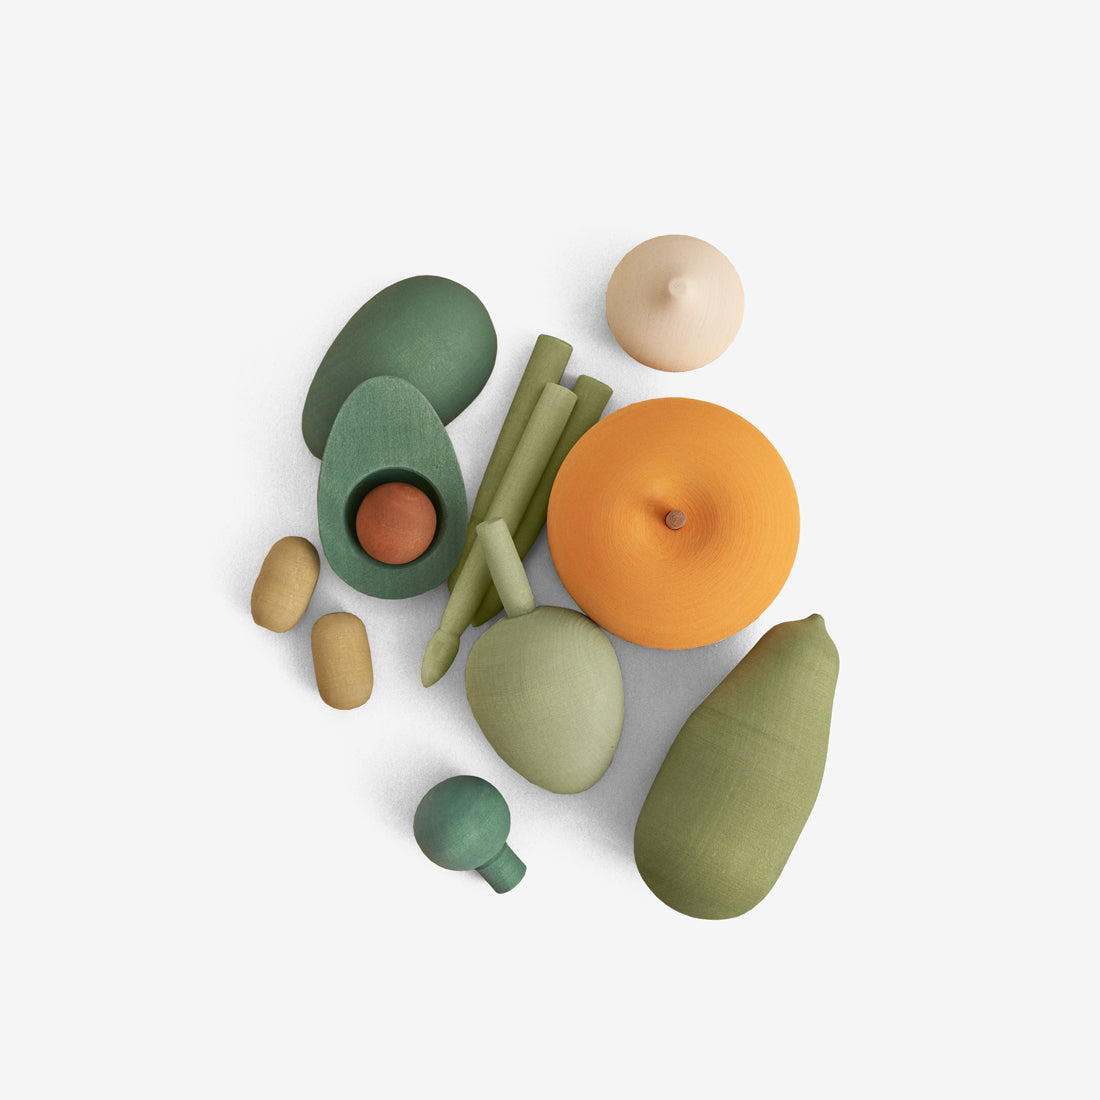 Wooden Foods Play Set - Veggies Vol2